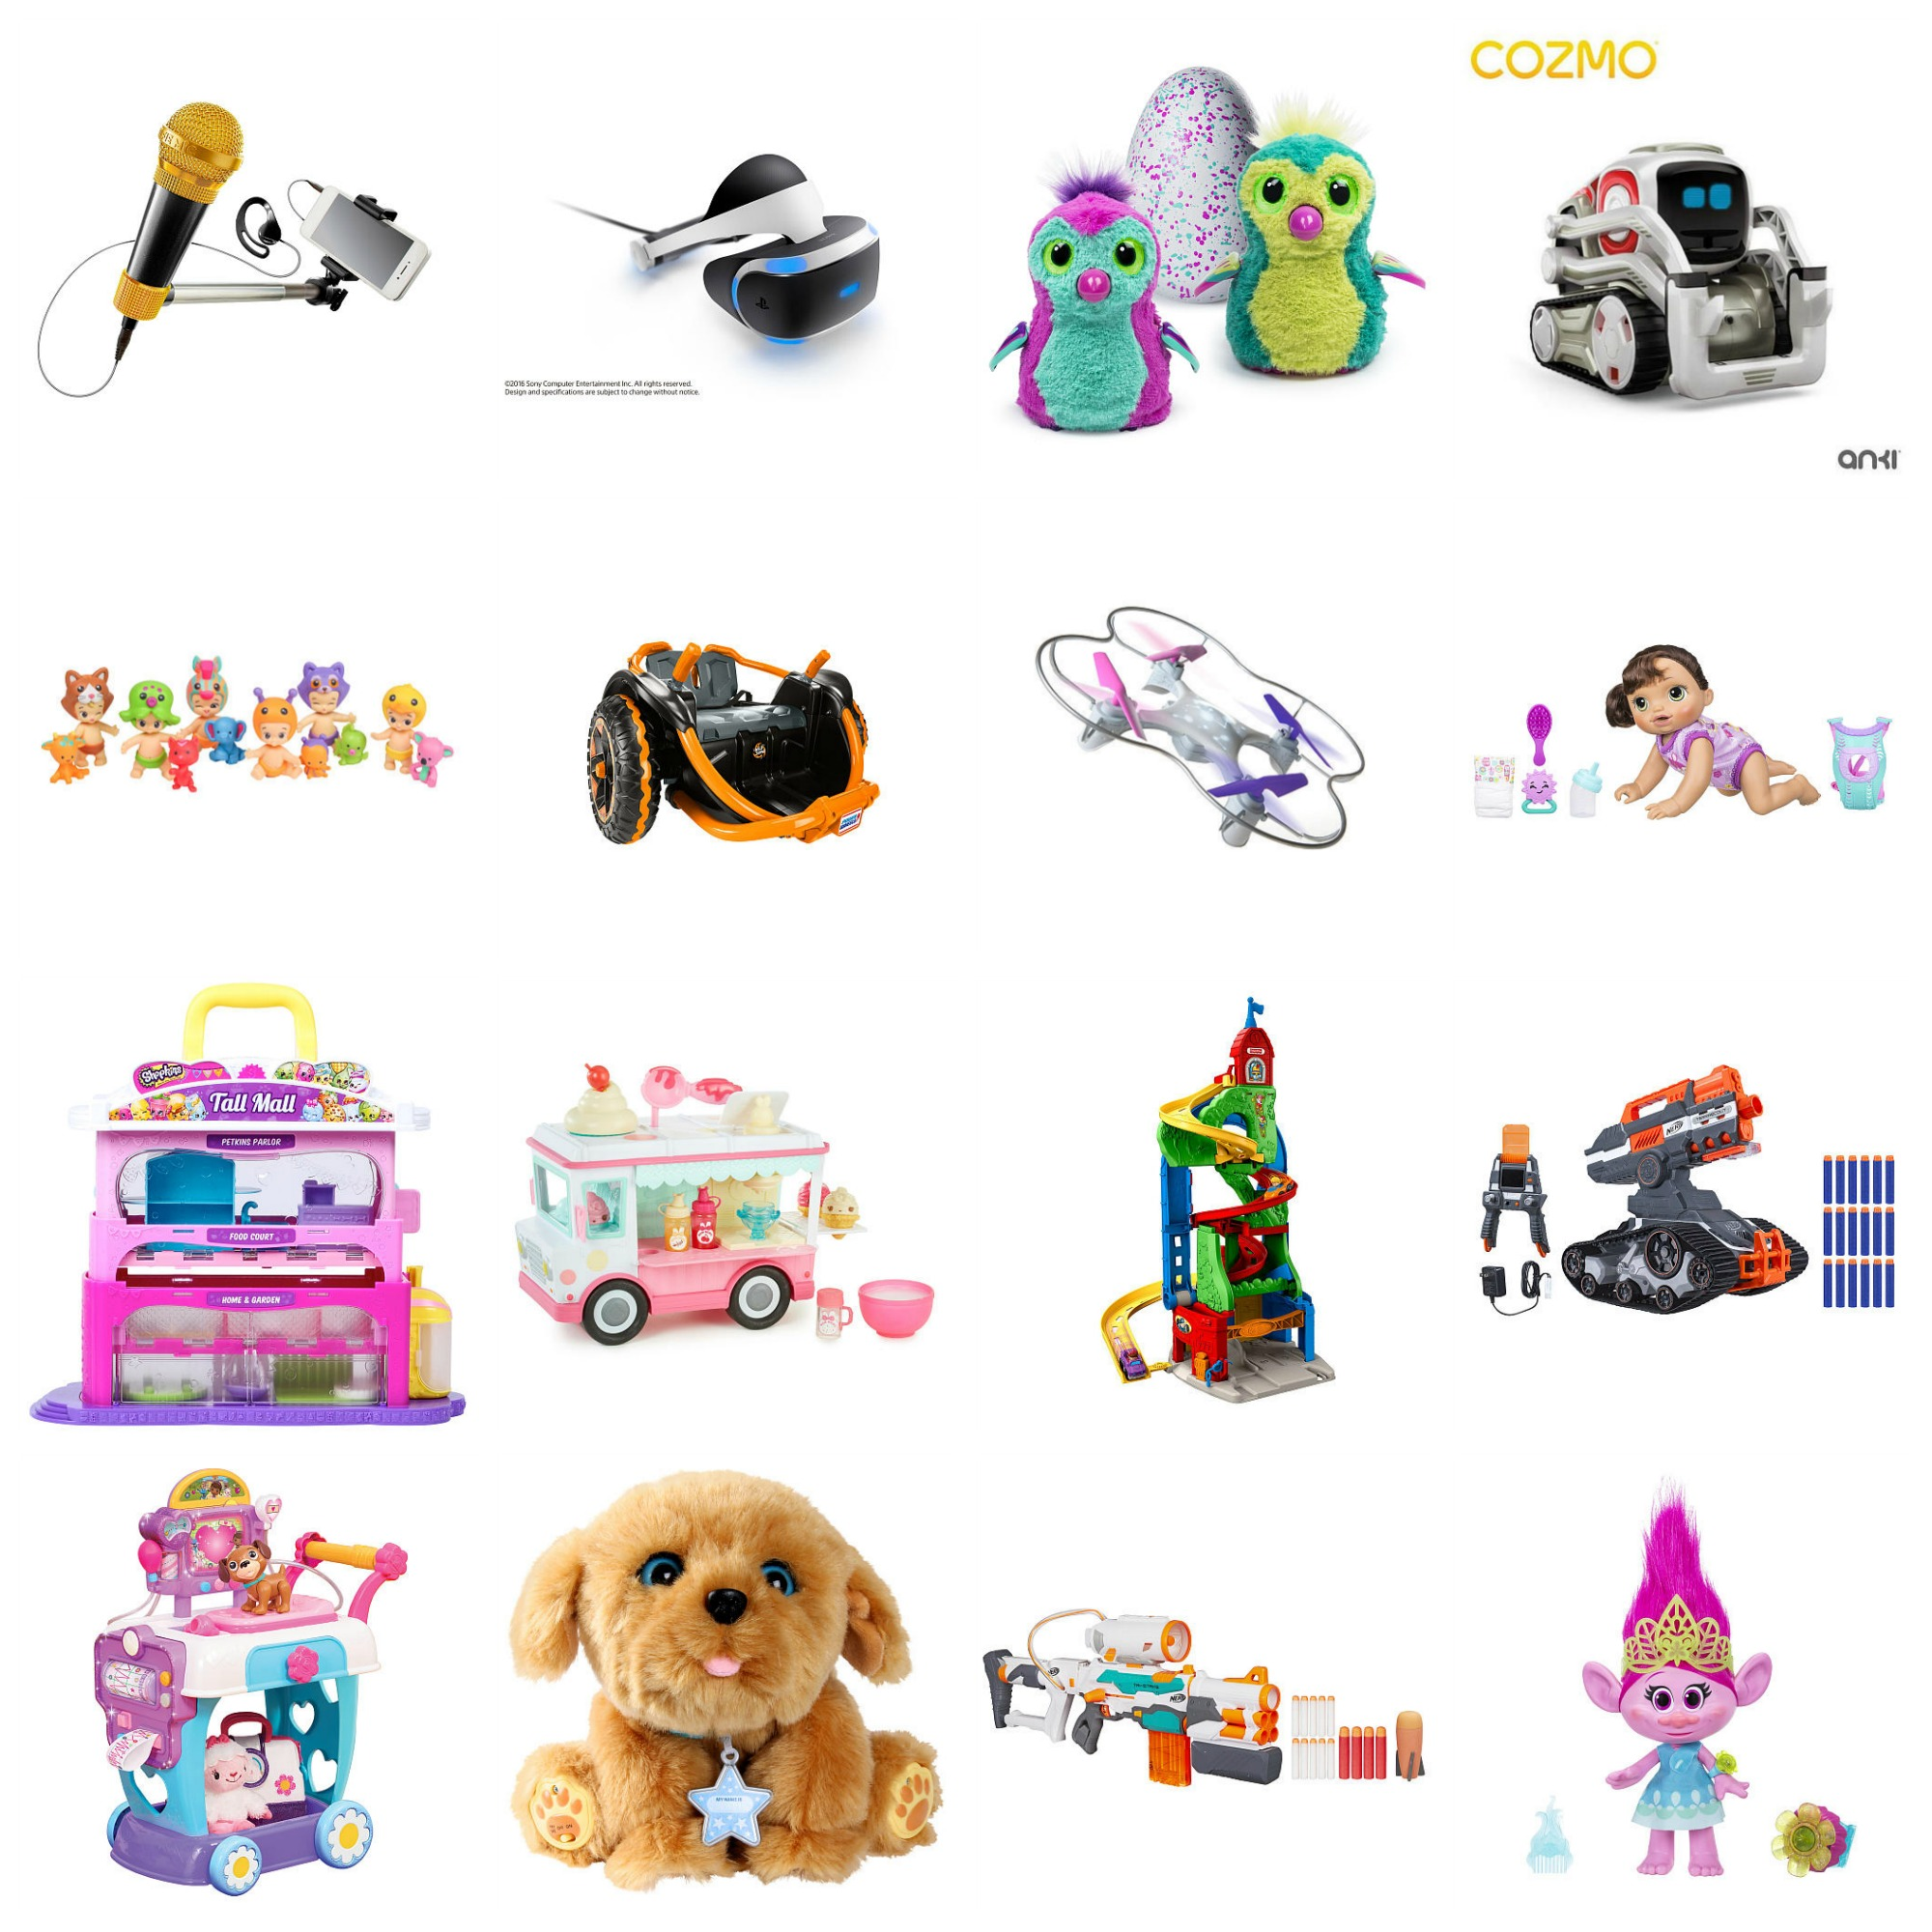 Toys R Us Holiday Hot Toy List